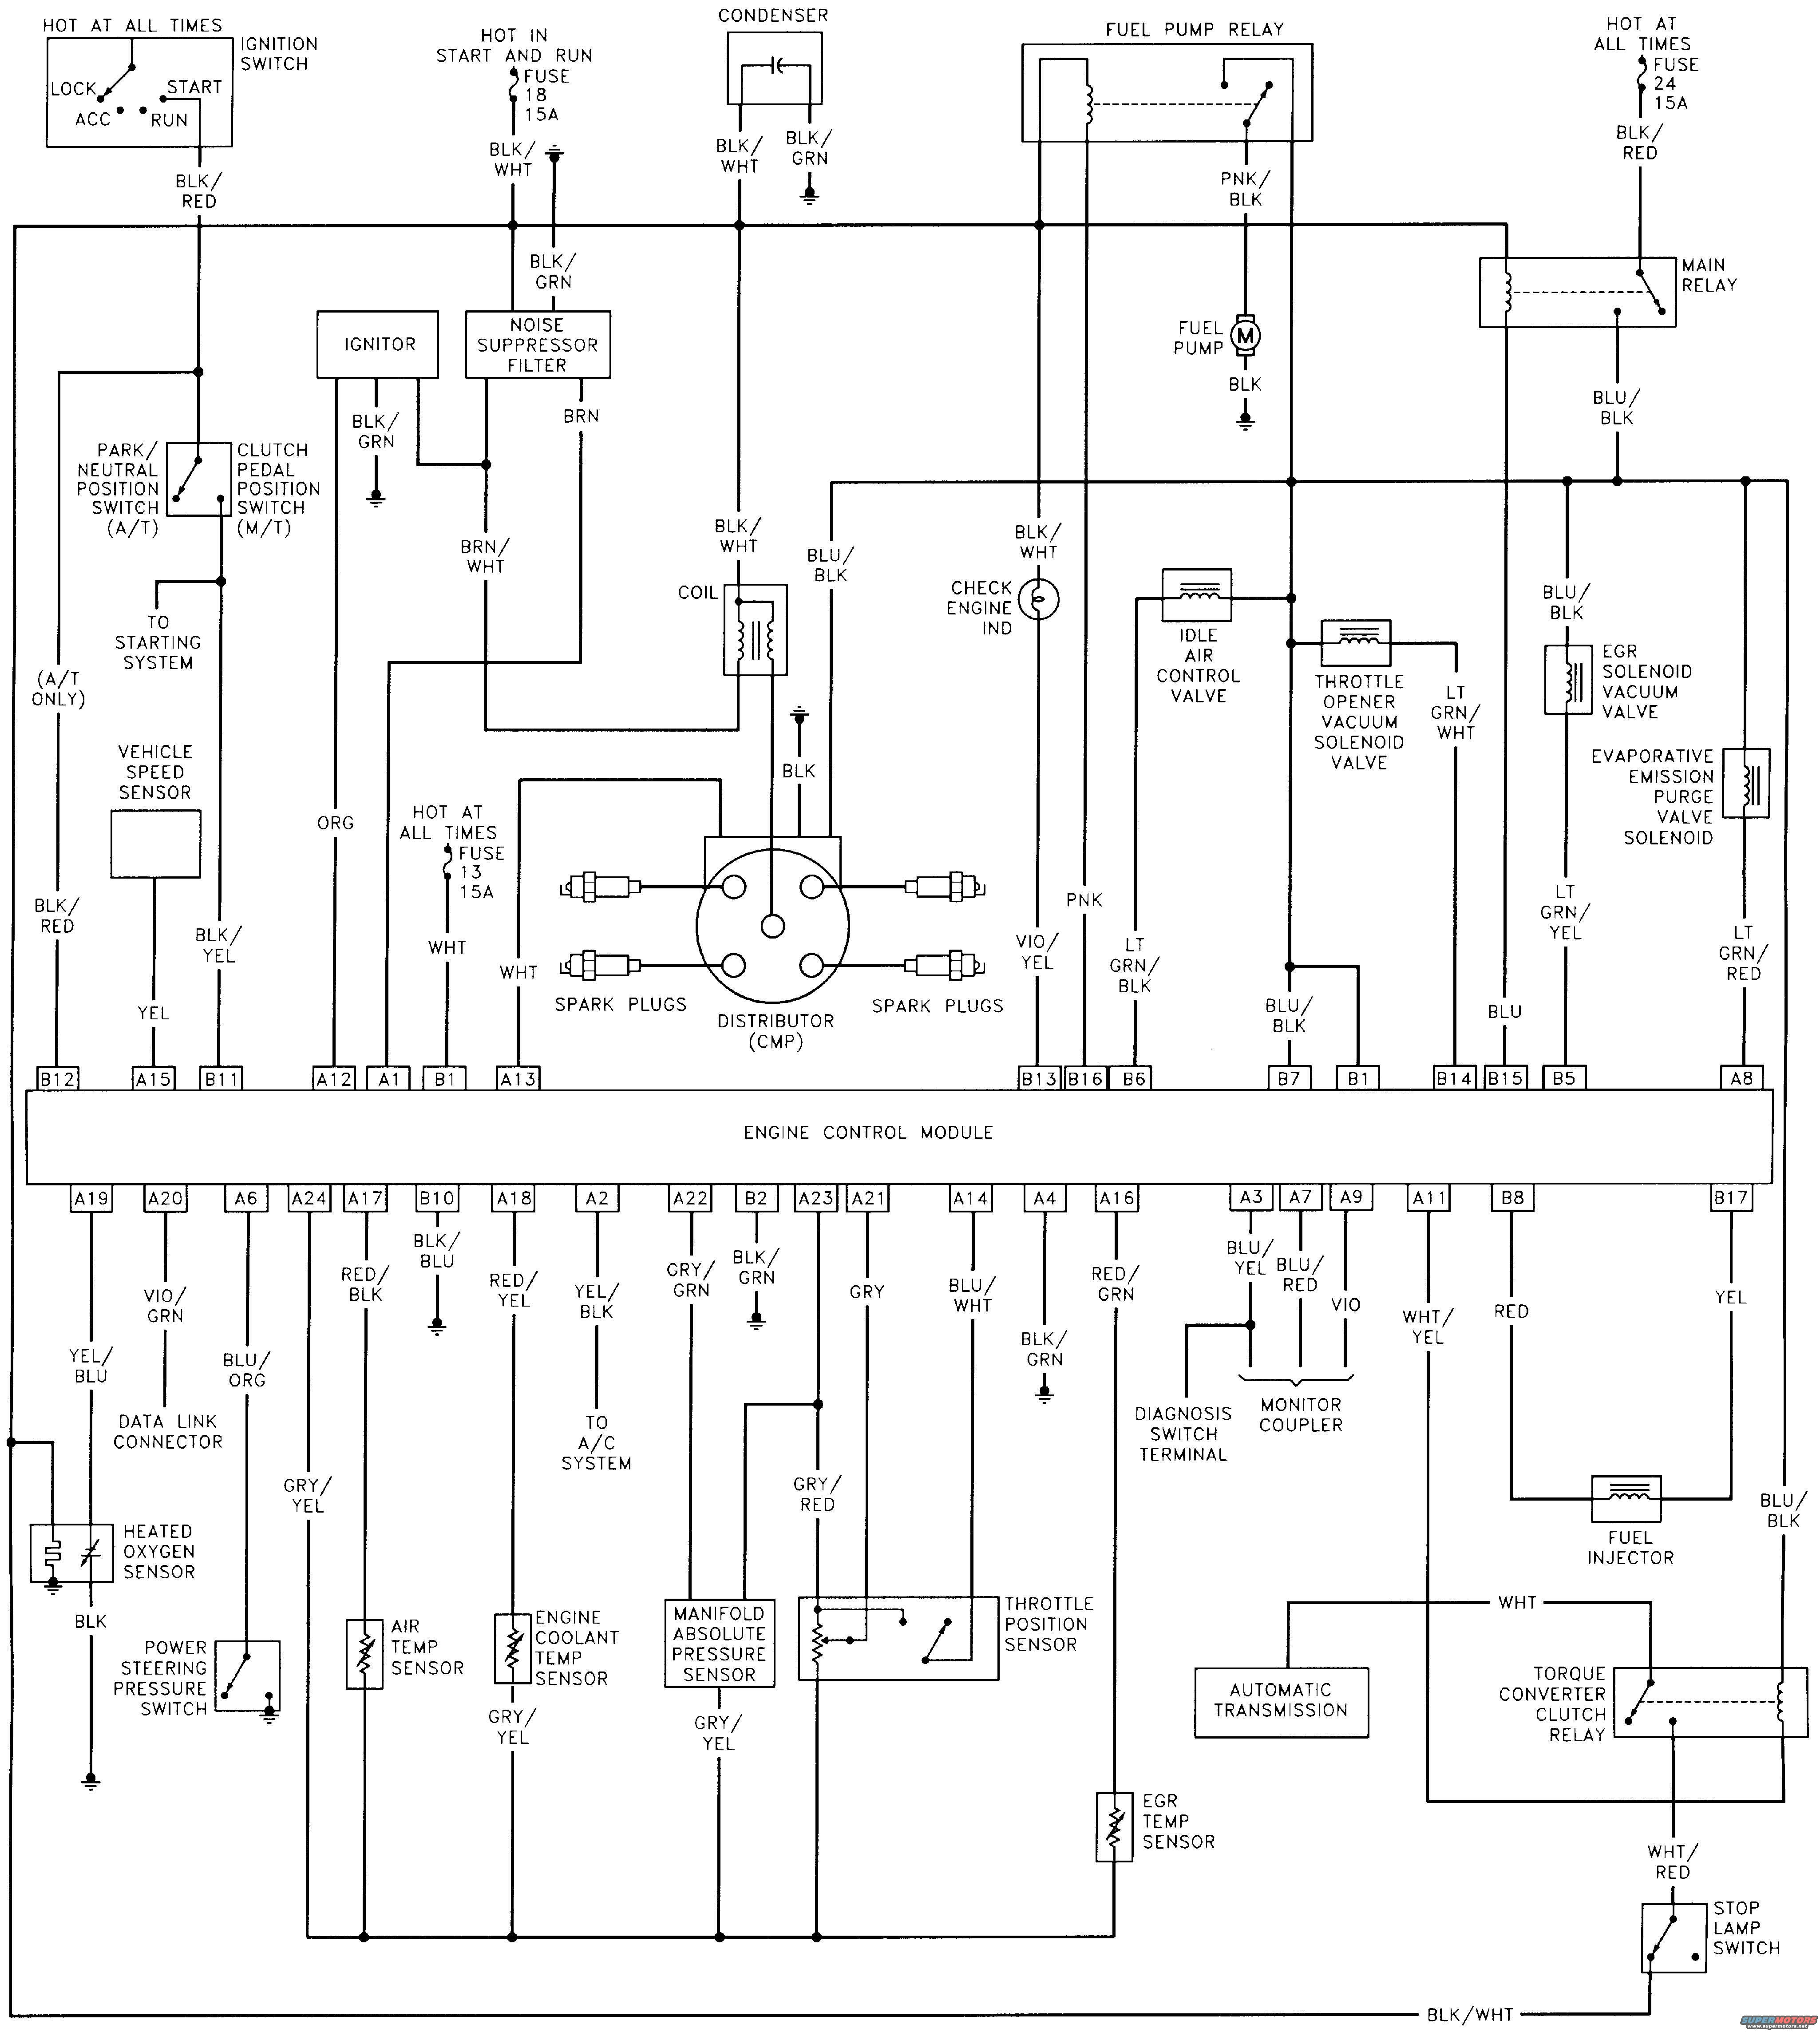 Windo Chevy Tracker Wiring Diagram - wiring diagram conductor-while -  conductor-while.labottegadisilvia.it | 1980 B Tracker Wiring Diagram Schematic |  | conductor-while.labottegadisilvia.it